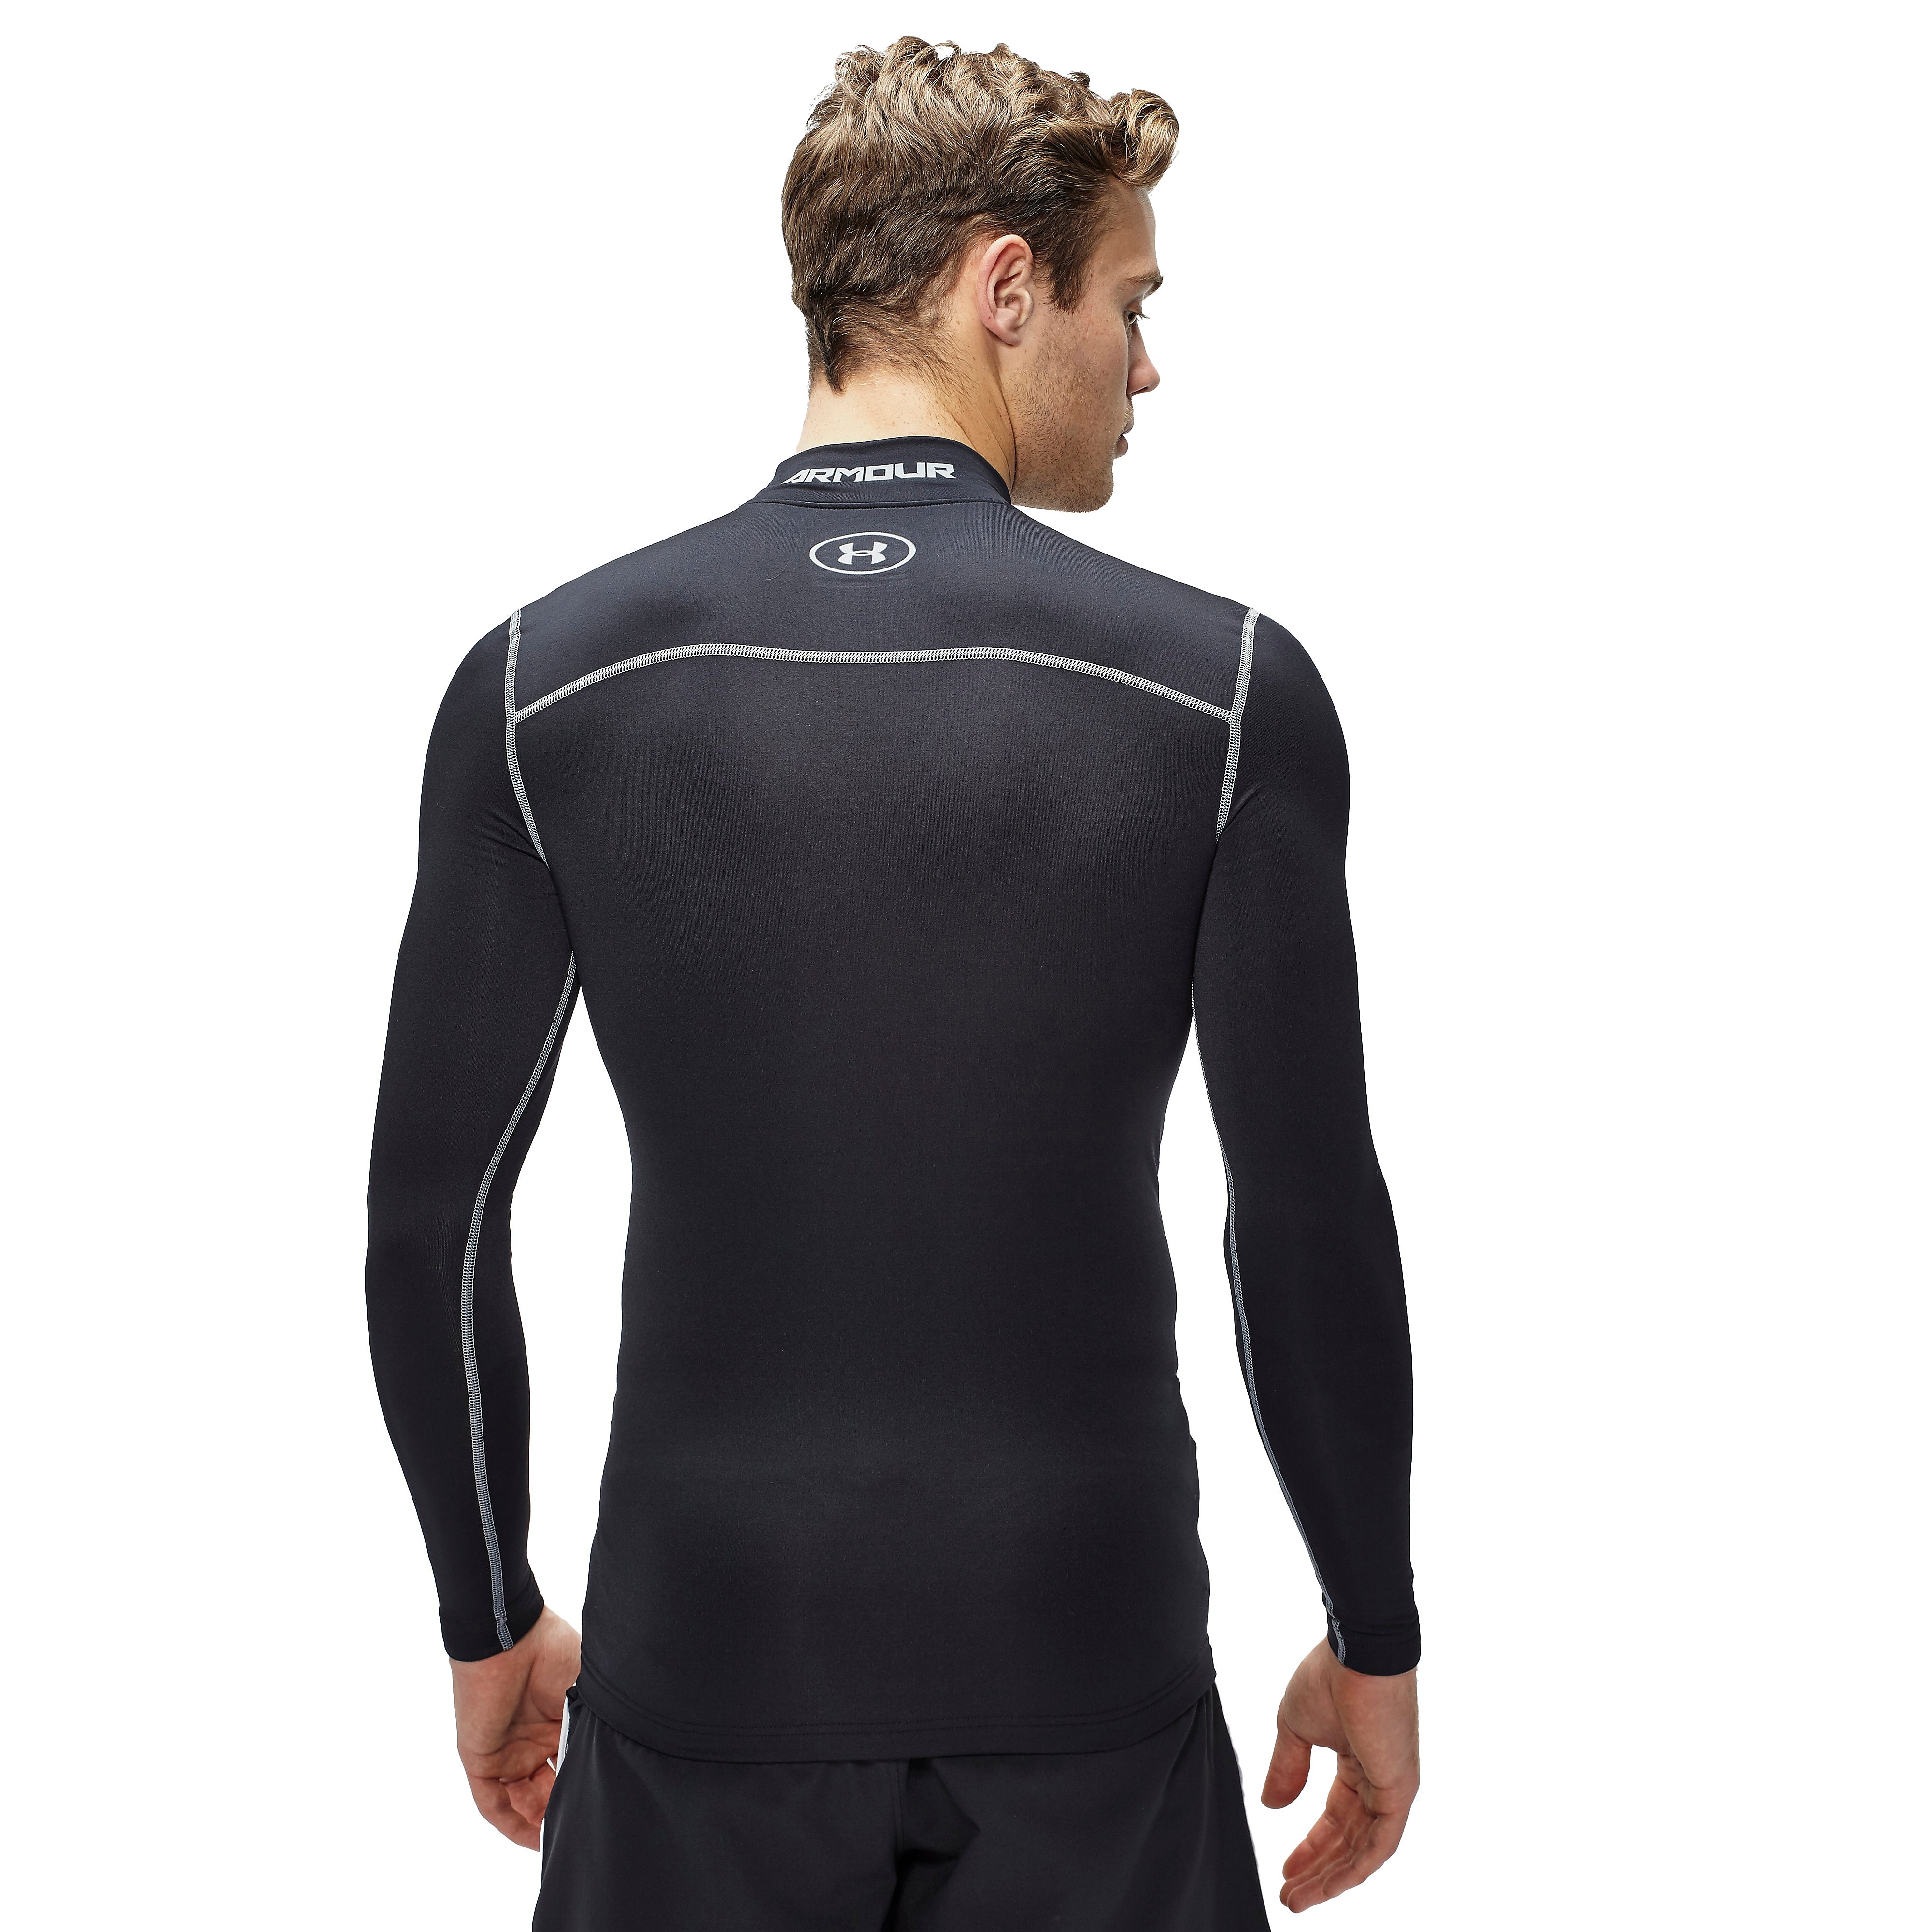 Under Armour ColdGear Armour Compression Men's Mock Top